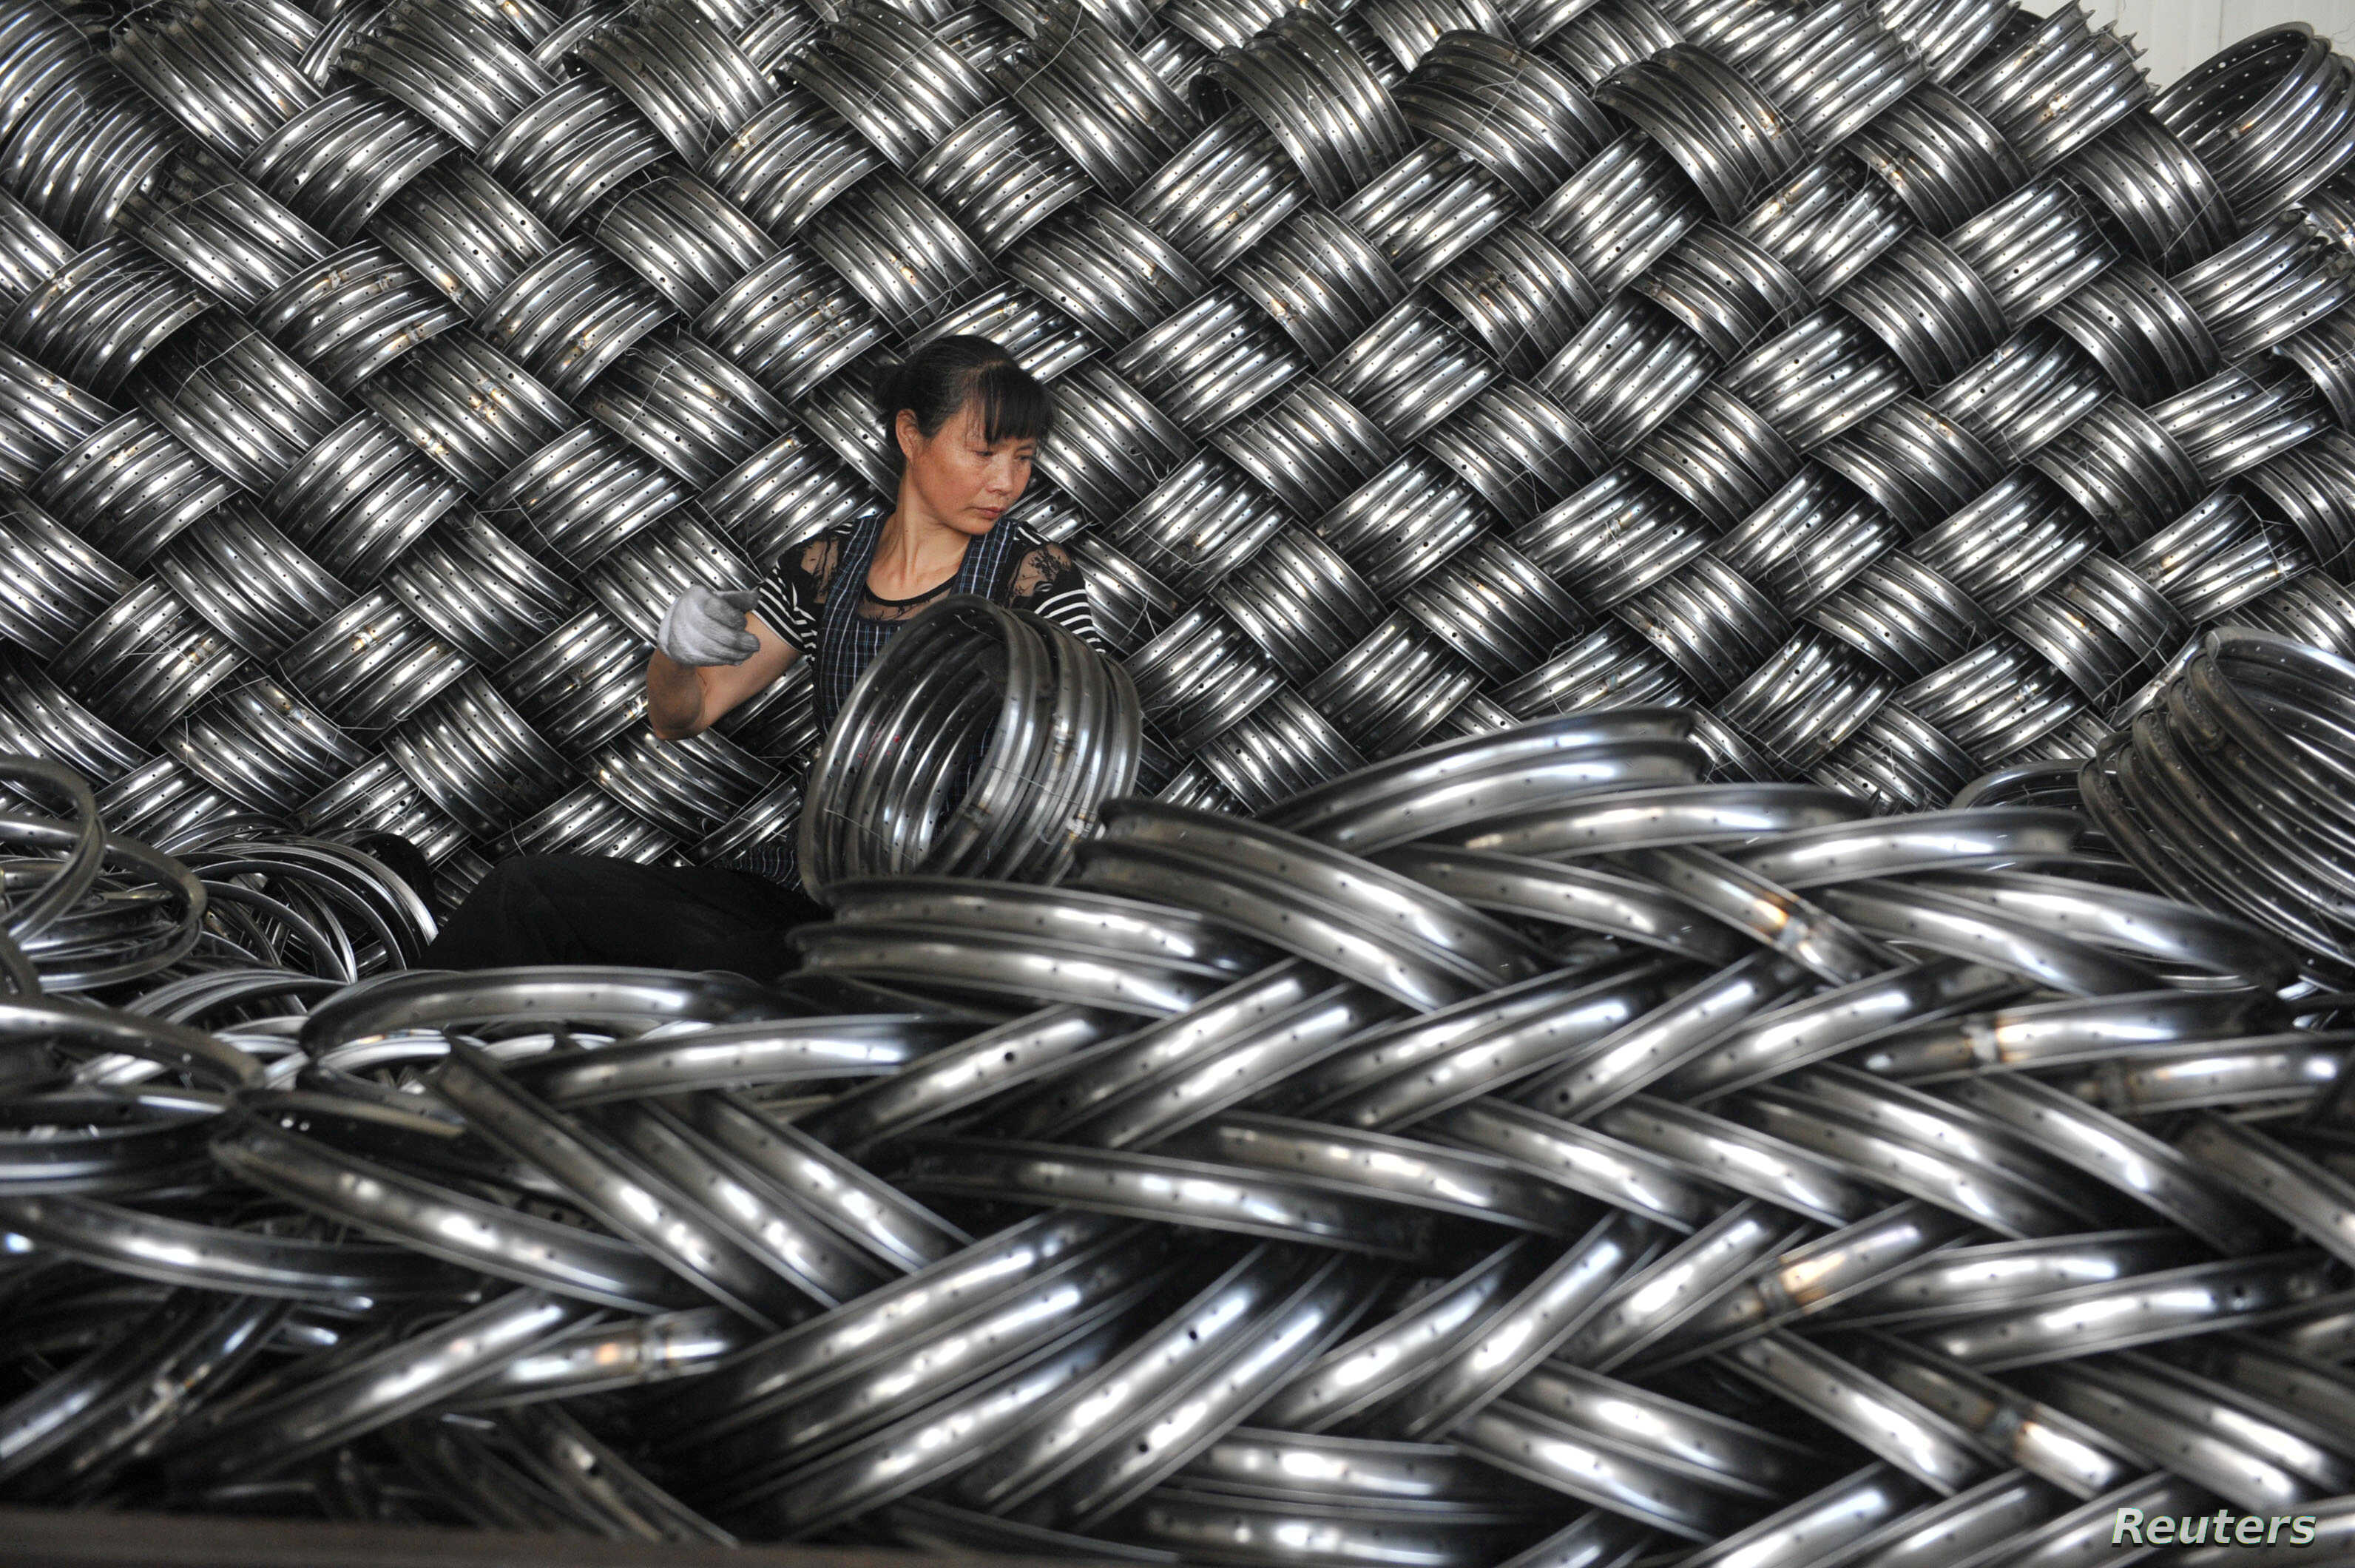 FILE - A woman works on packaging bicycle rim steels for export at a workshop of a company manufacturing sports equipments in Hangzhou, Zhejiang province, China, June 4, 2018.